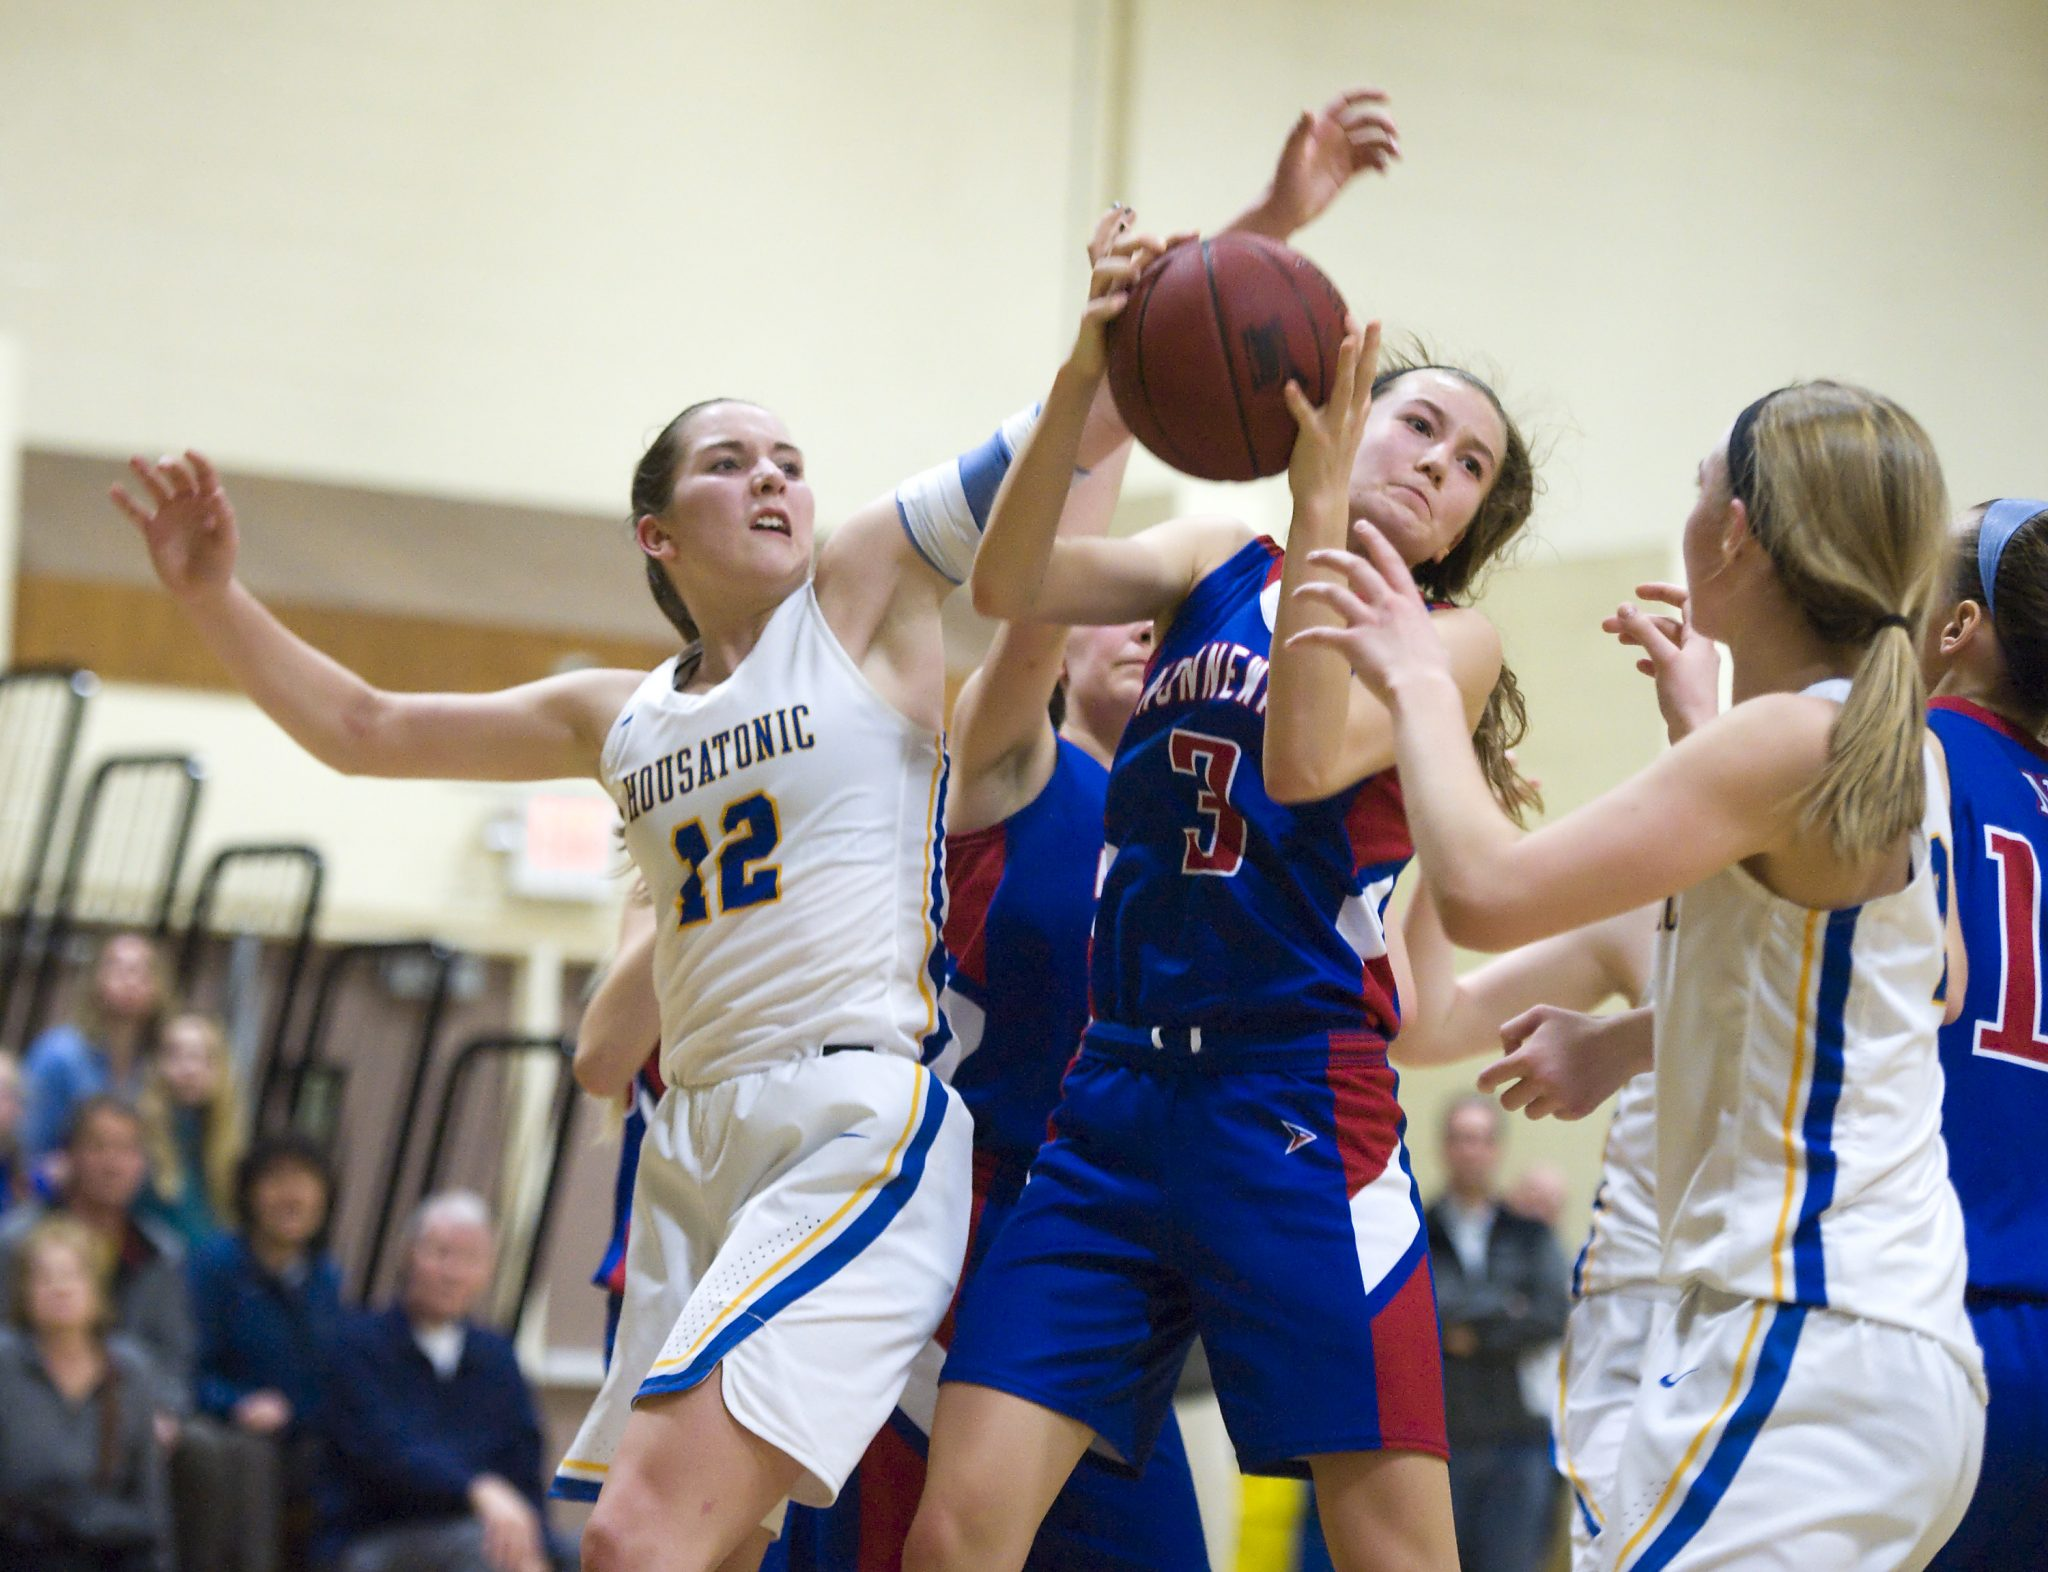 Video Highlights Of Nonnewaug Win Over Housatonic In BL